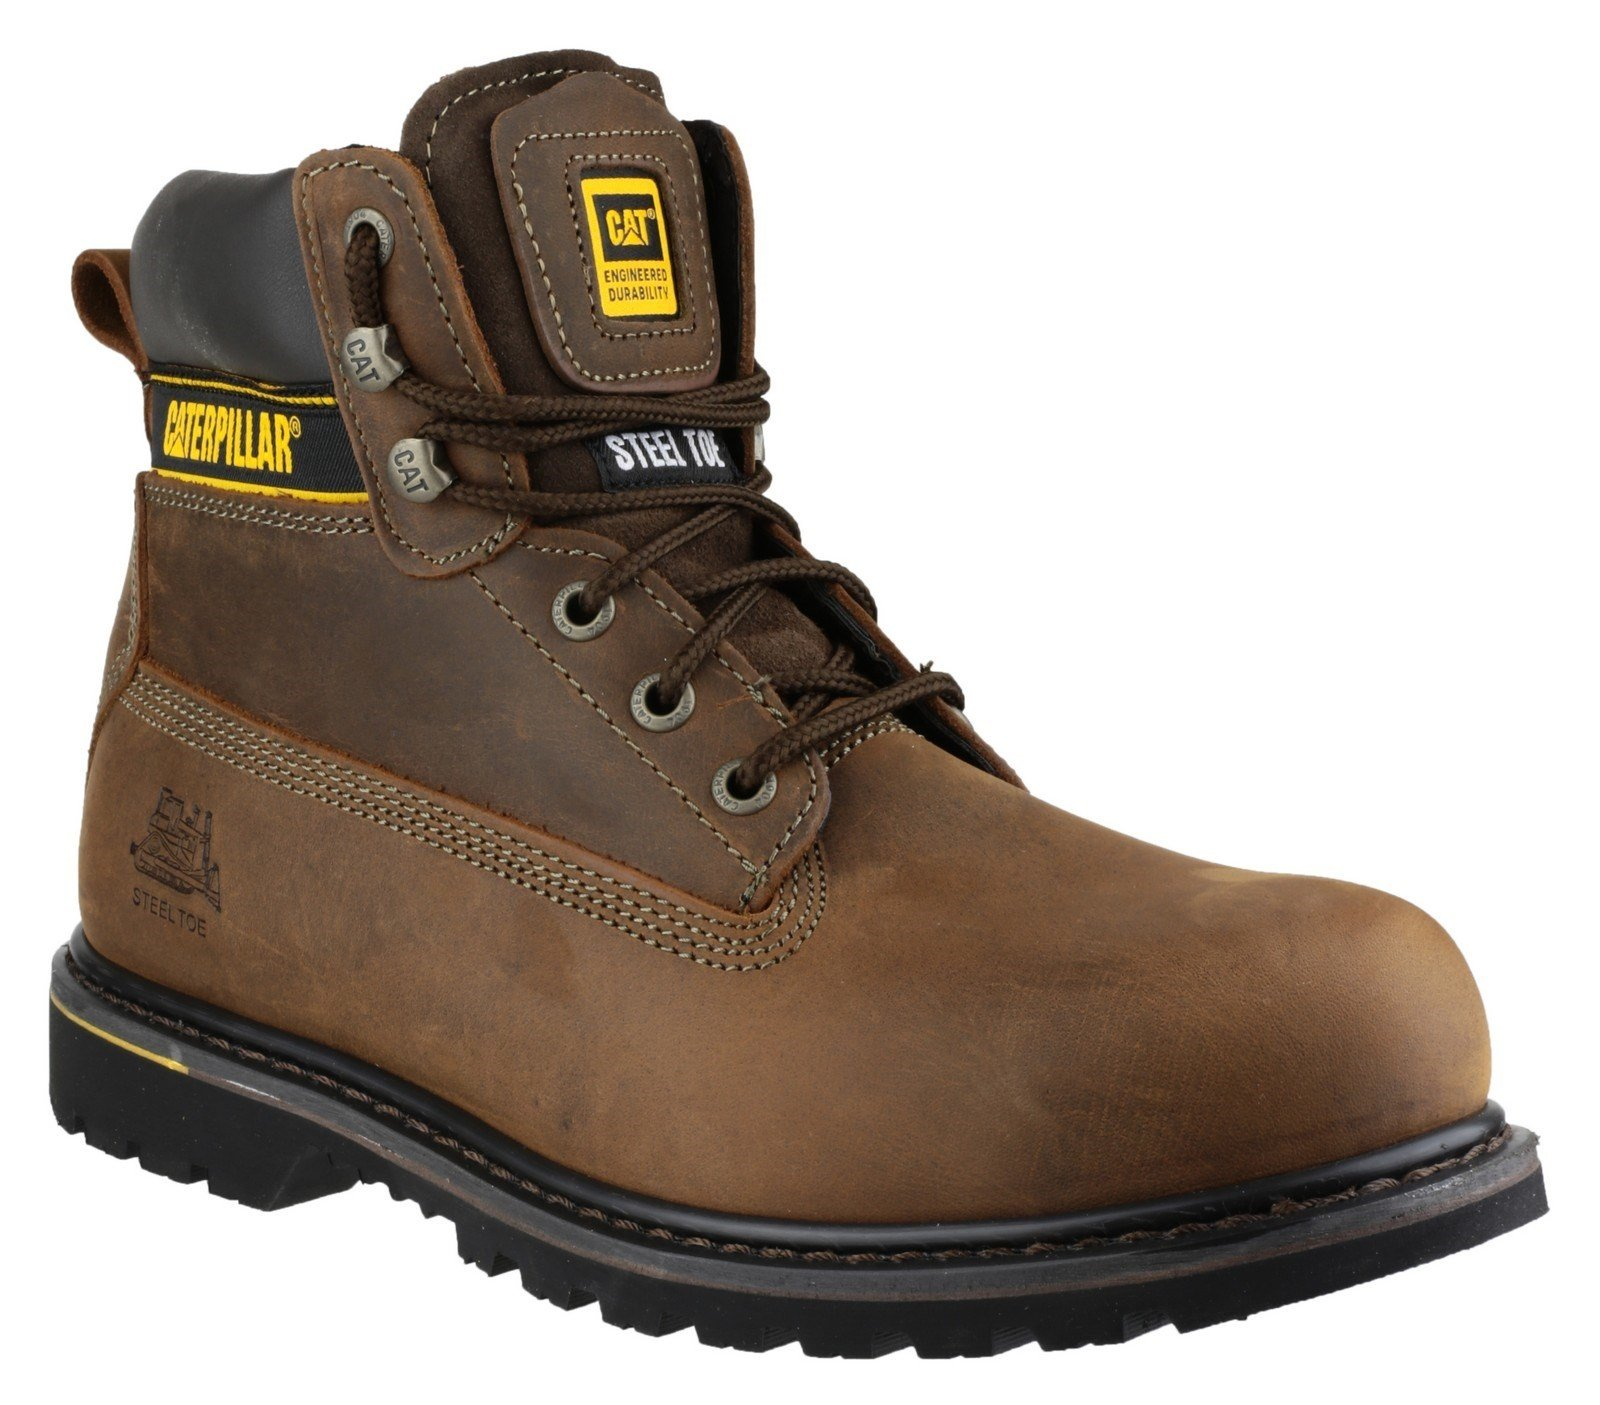 Caterpillar Men's Holton Lace Up Boot Brown 12807 - Brown 6